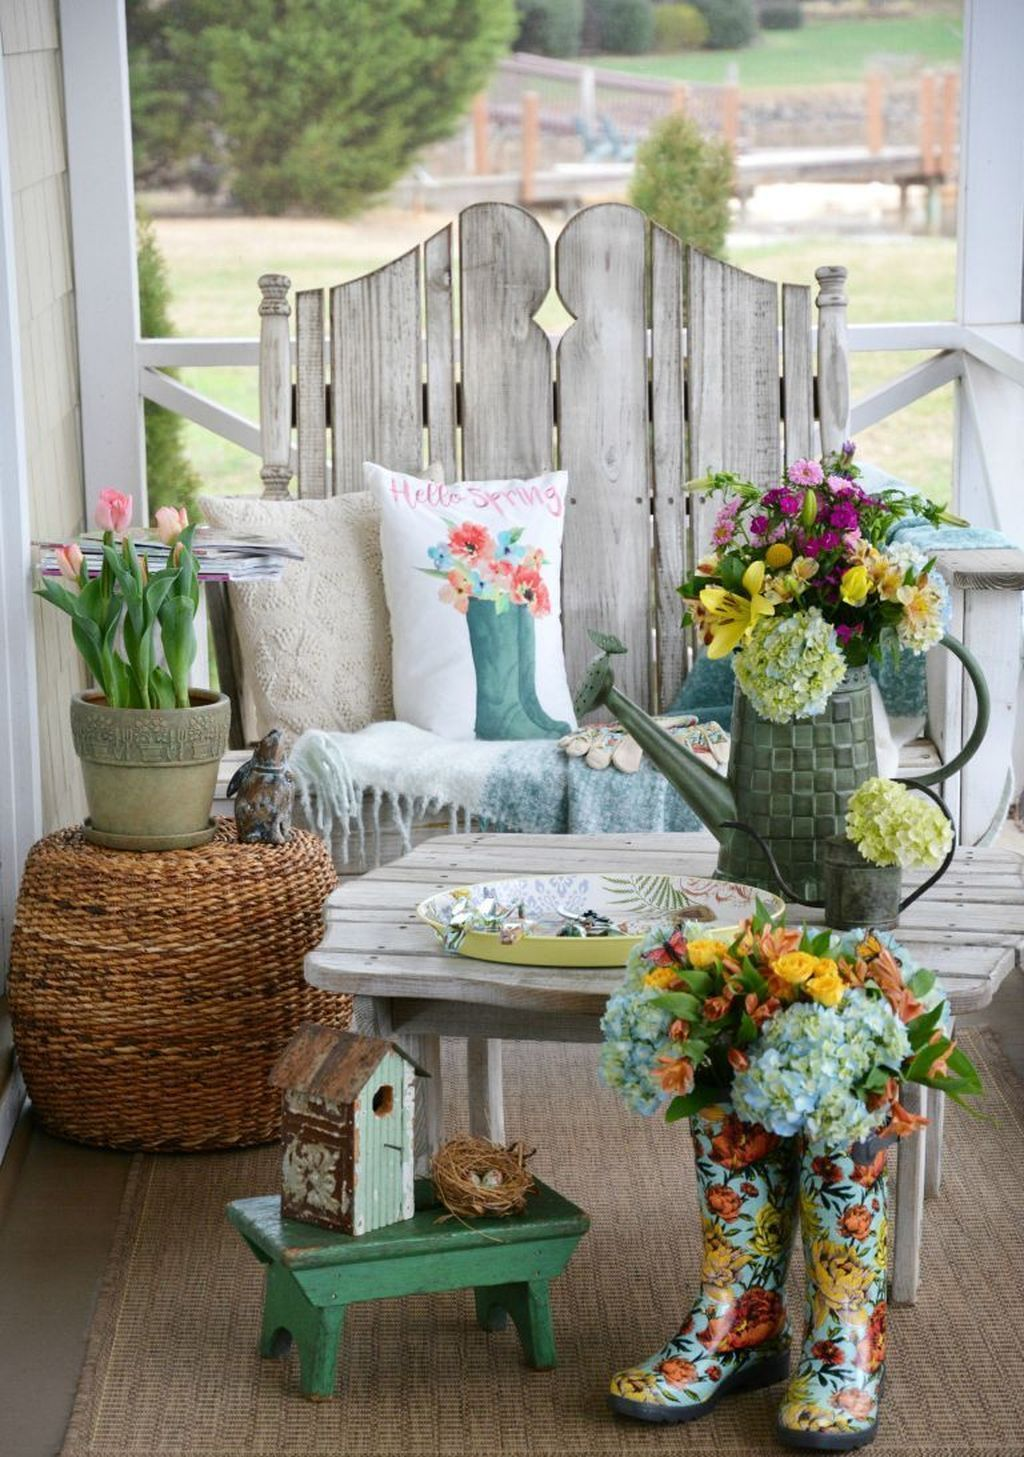 The Best Front Porch Ideas For Summer Decorating 09